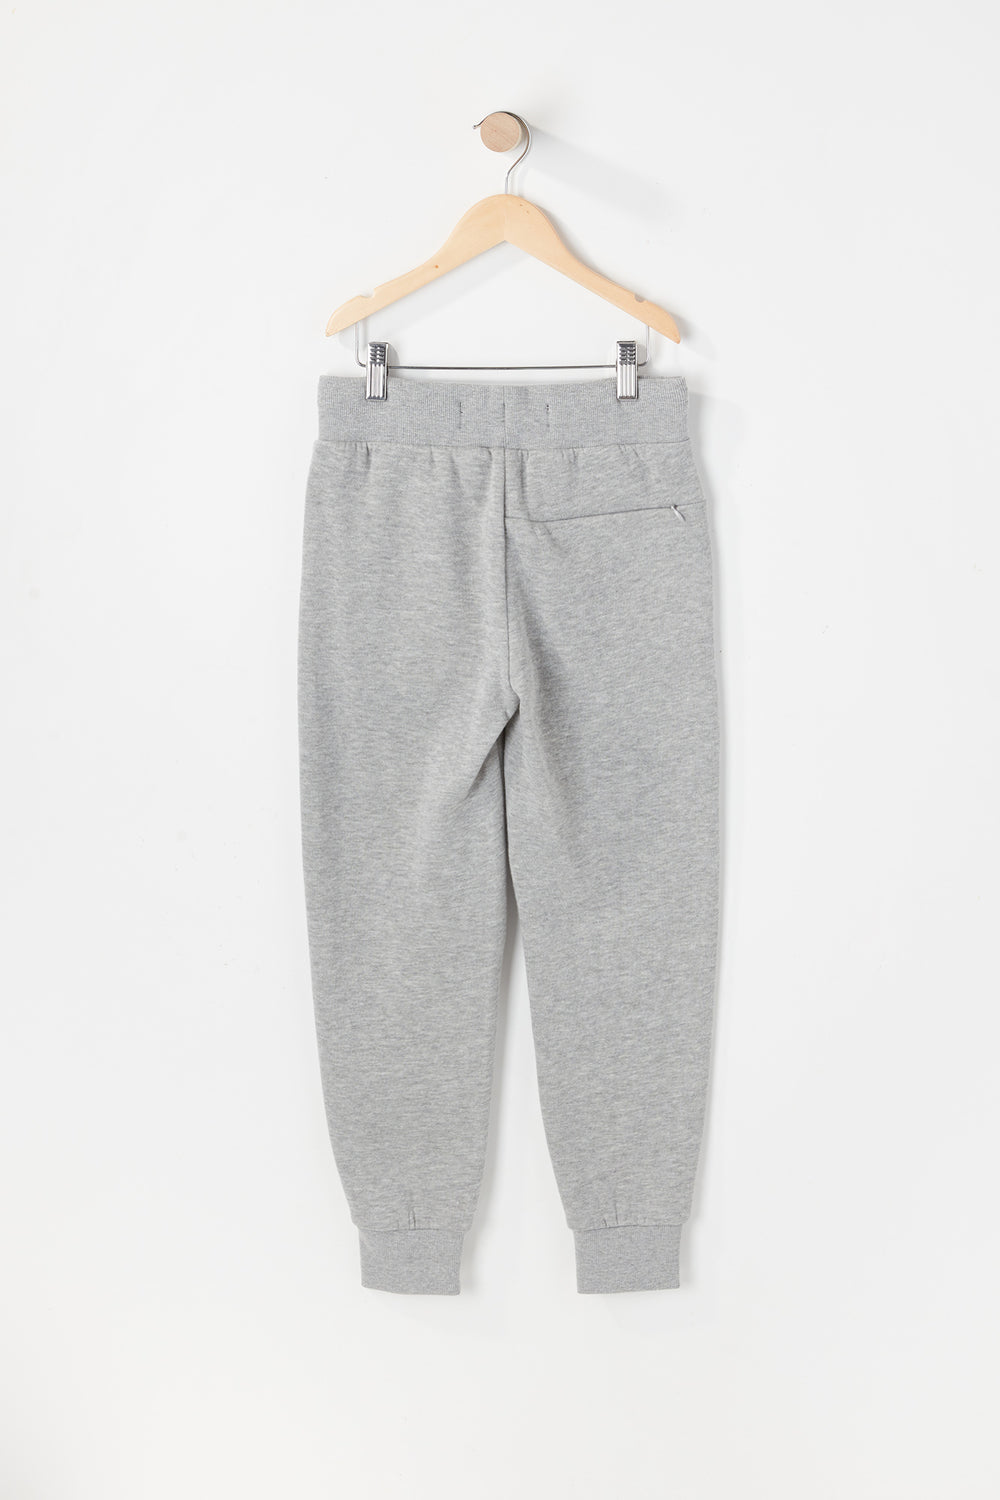 West49 Youth Solid Moto Jogger Heather Grey